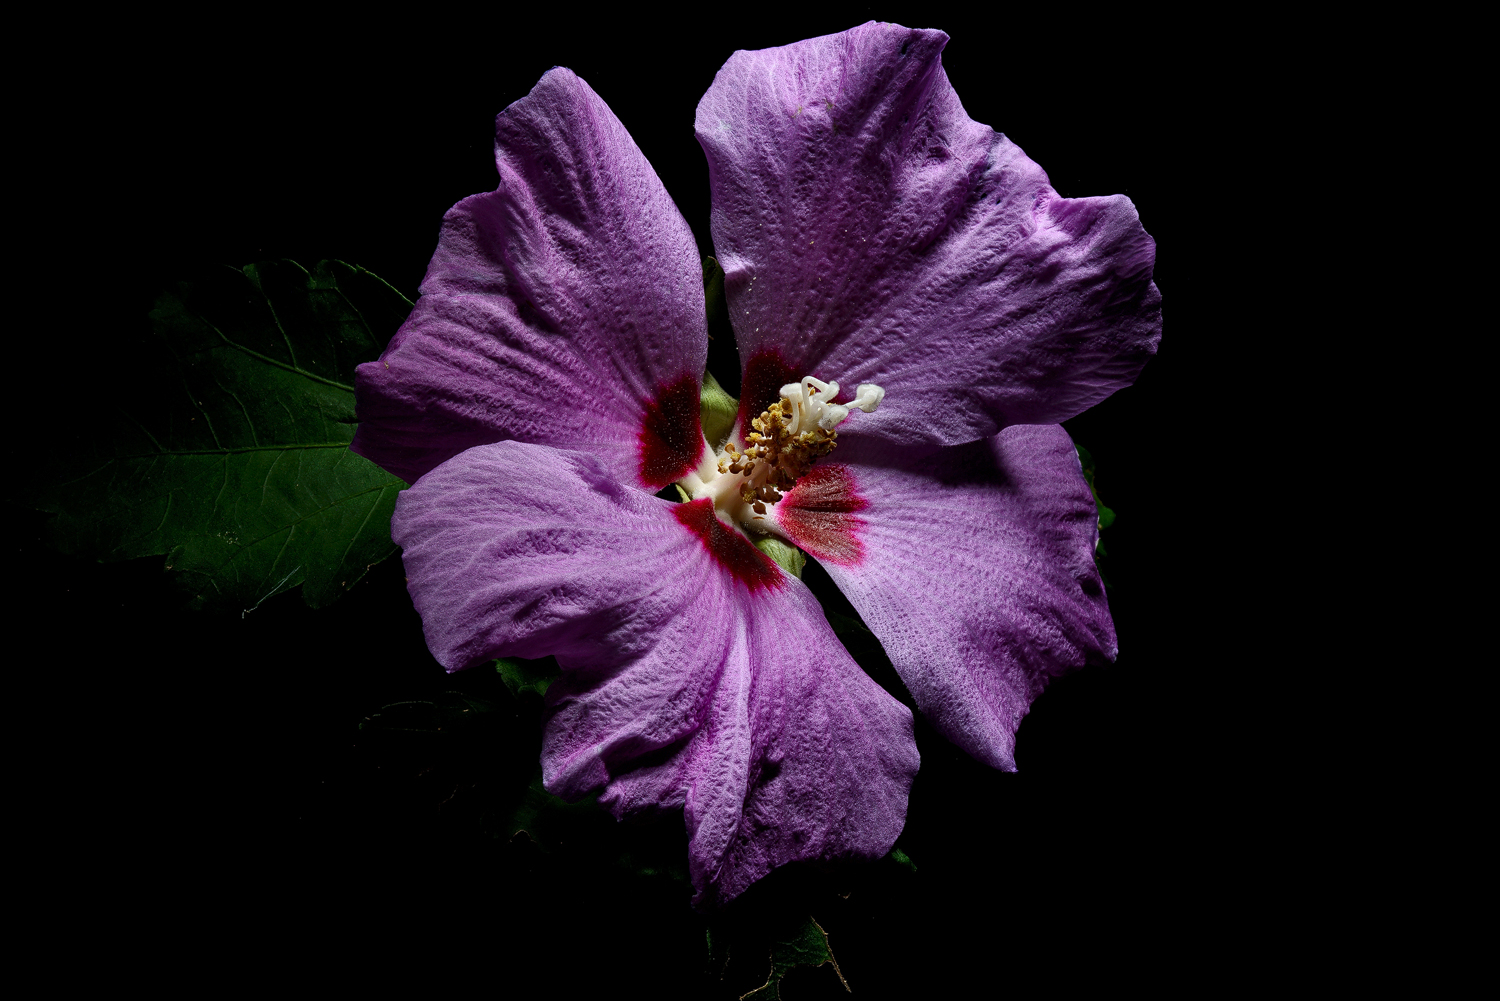 purple rose of sharon dsc aw author sava gregory and verena